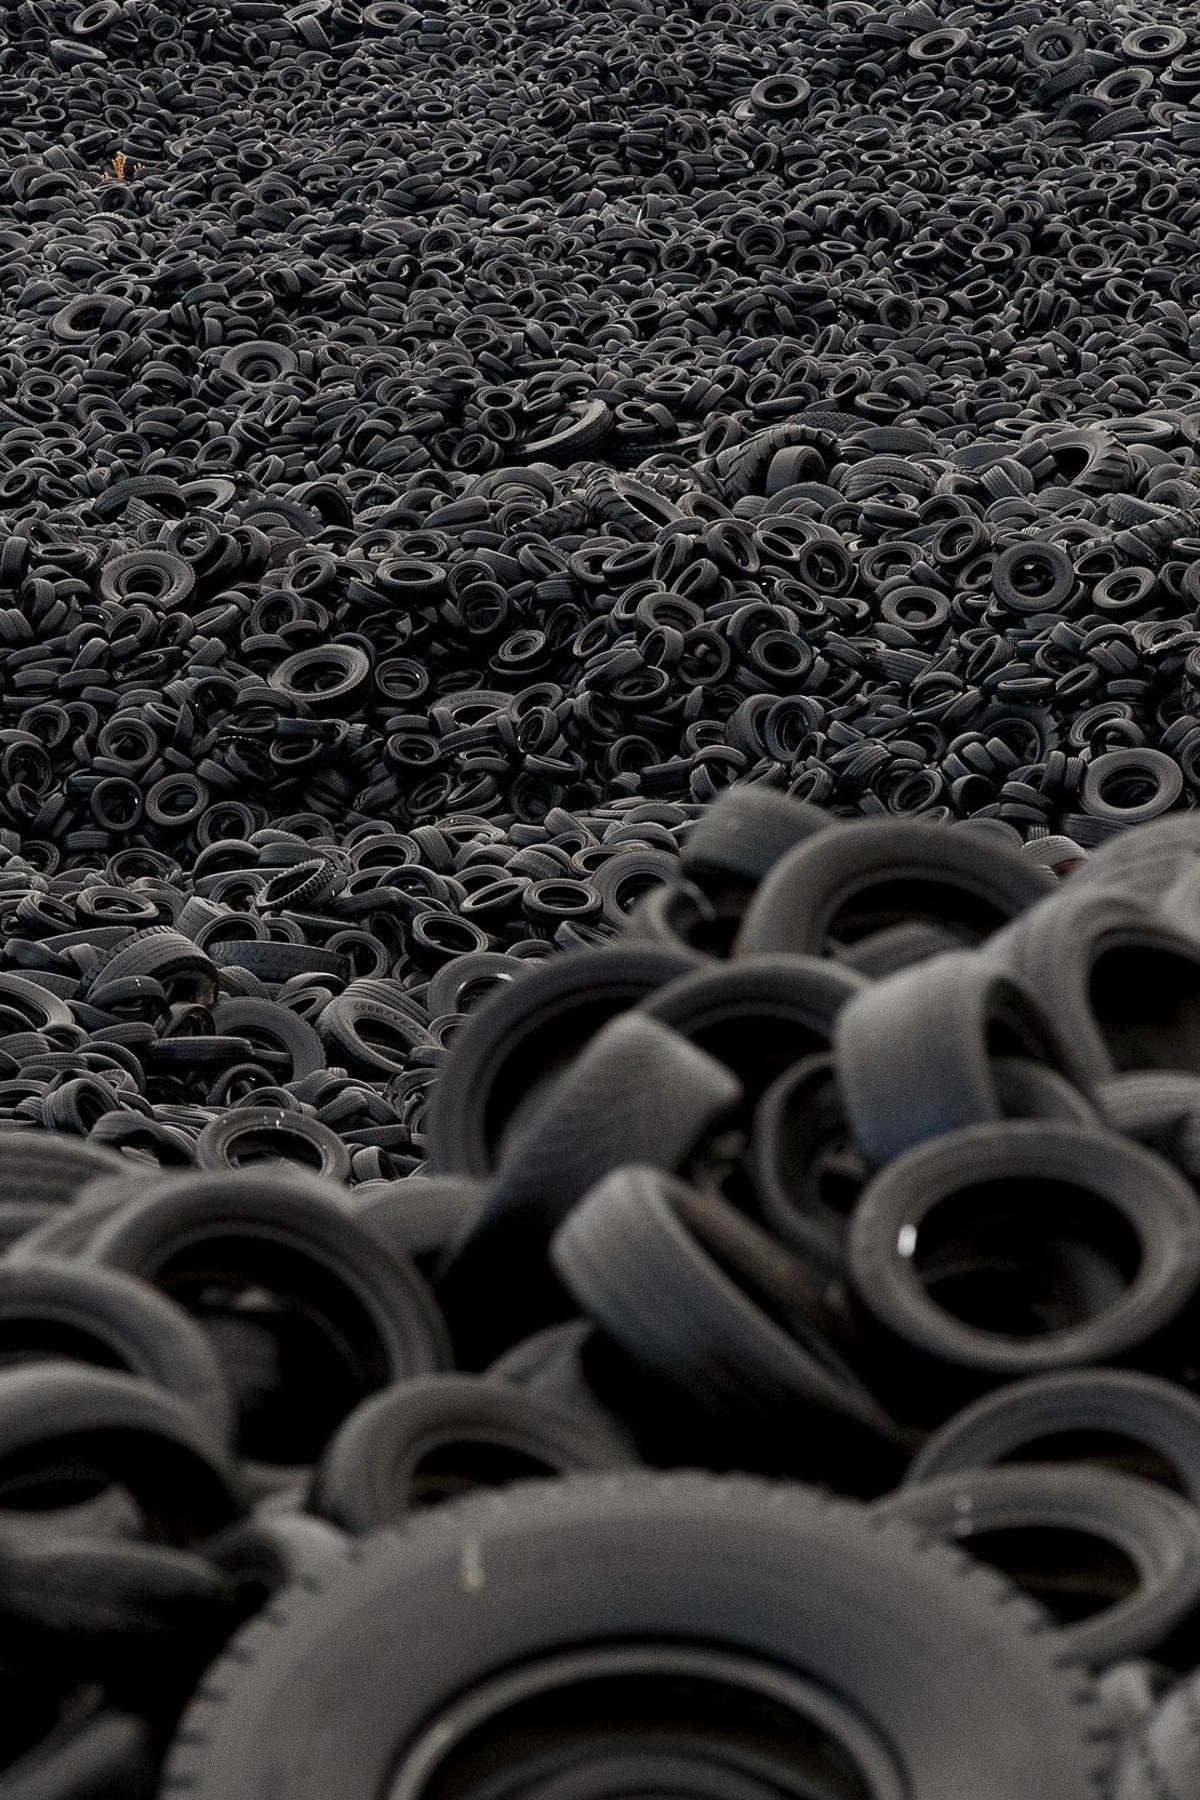 Turning old tyres into new roads | Pursuit by The University of